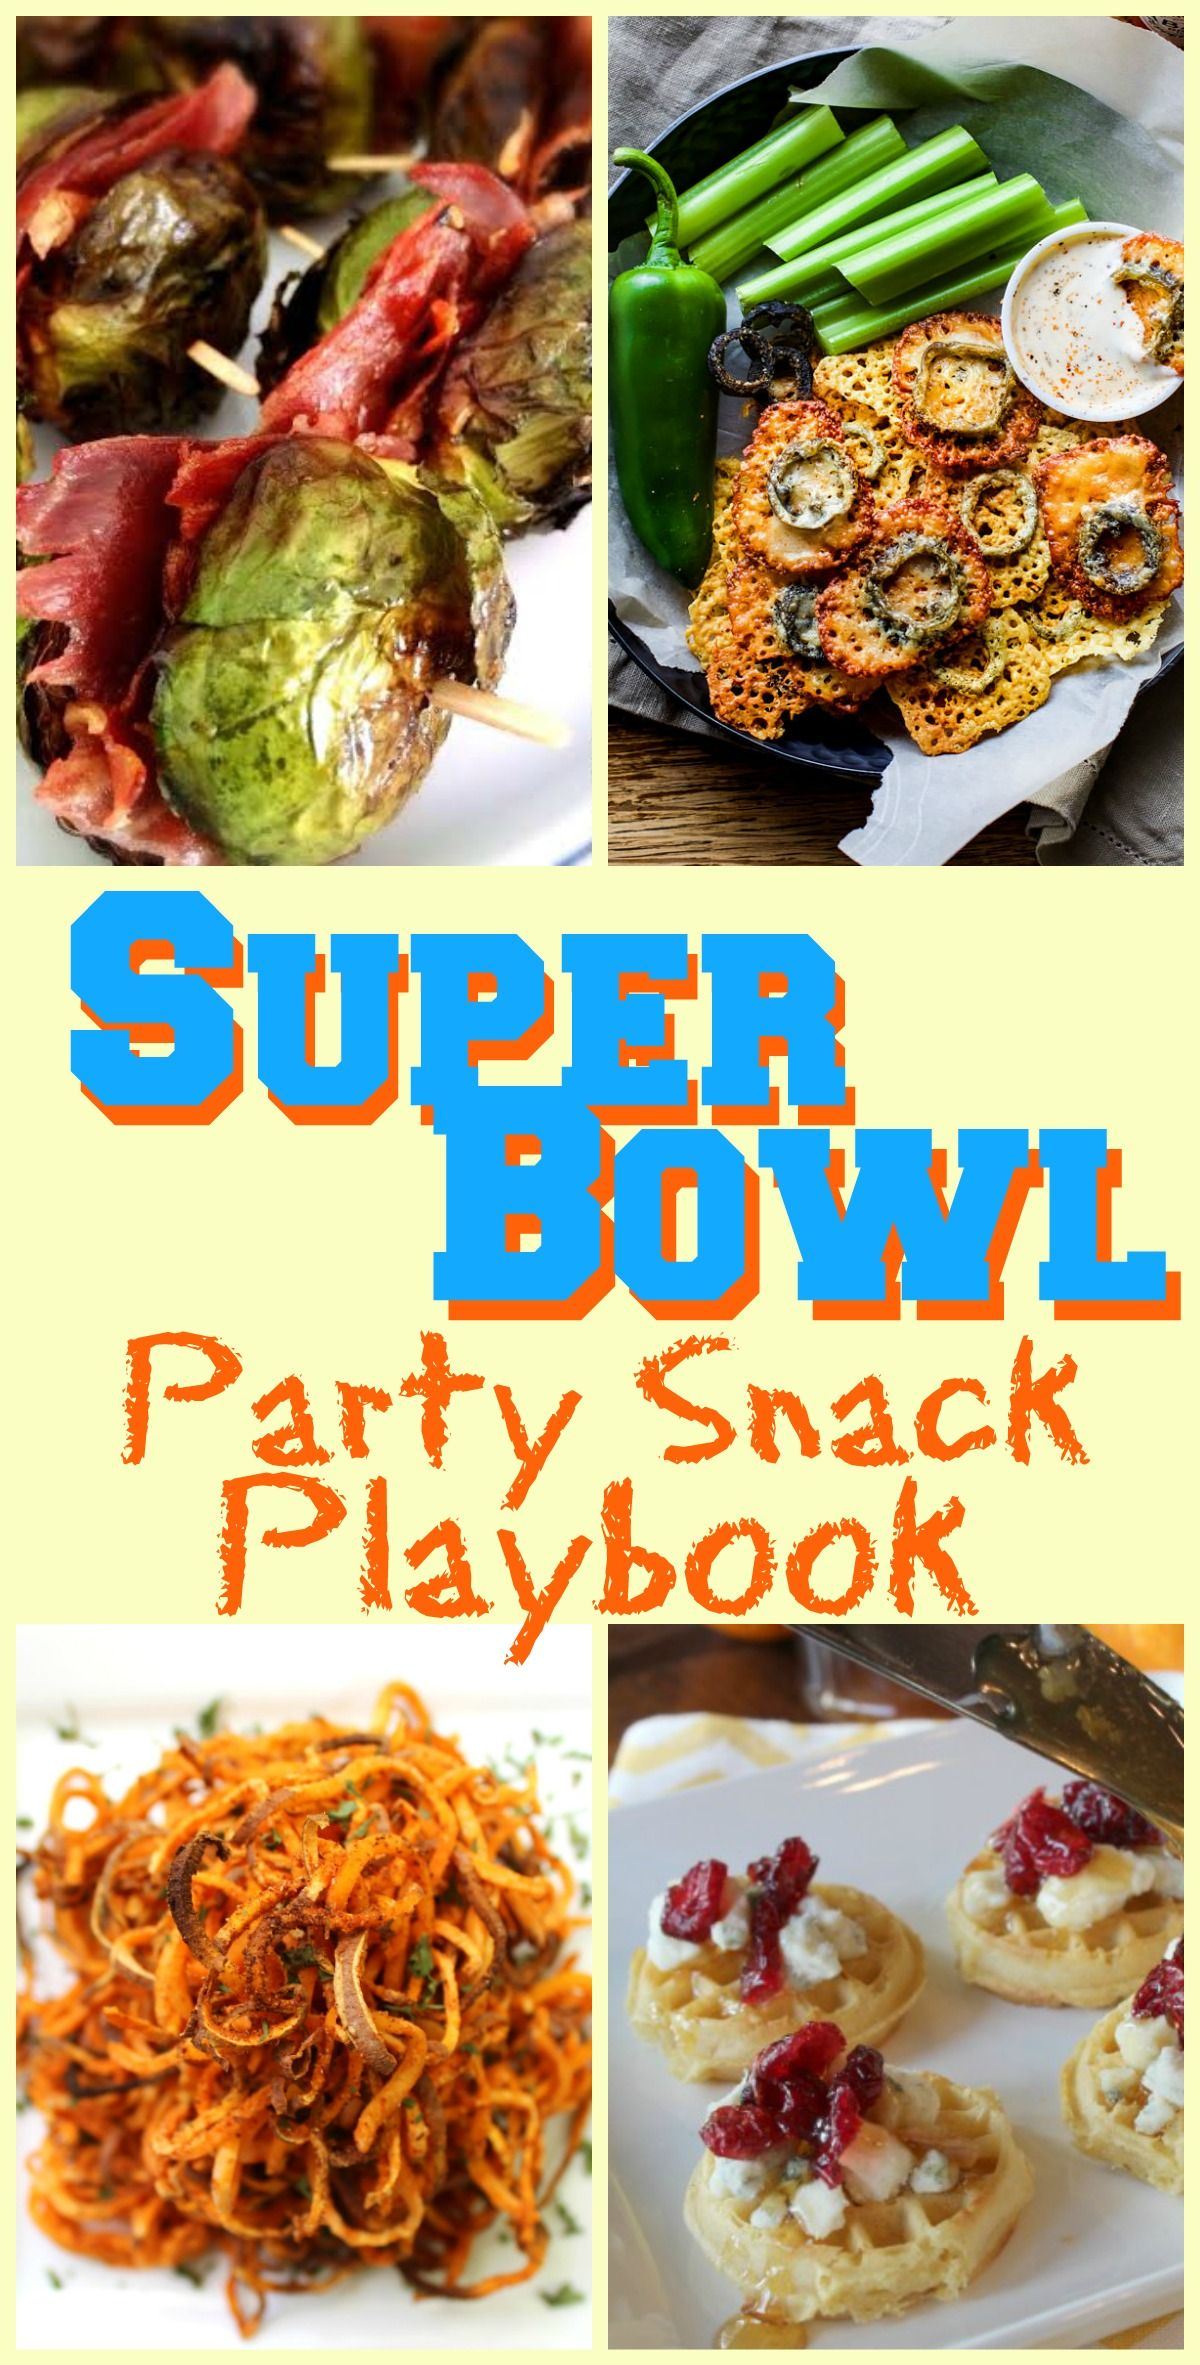 Super bowl party playbook recipes super bowl party super easy super bowl party playbook recipes forumfinder Image collections